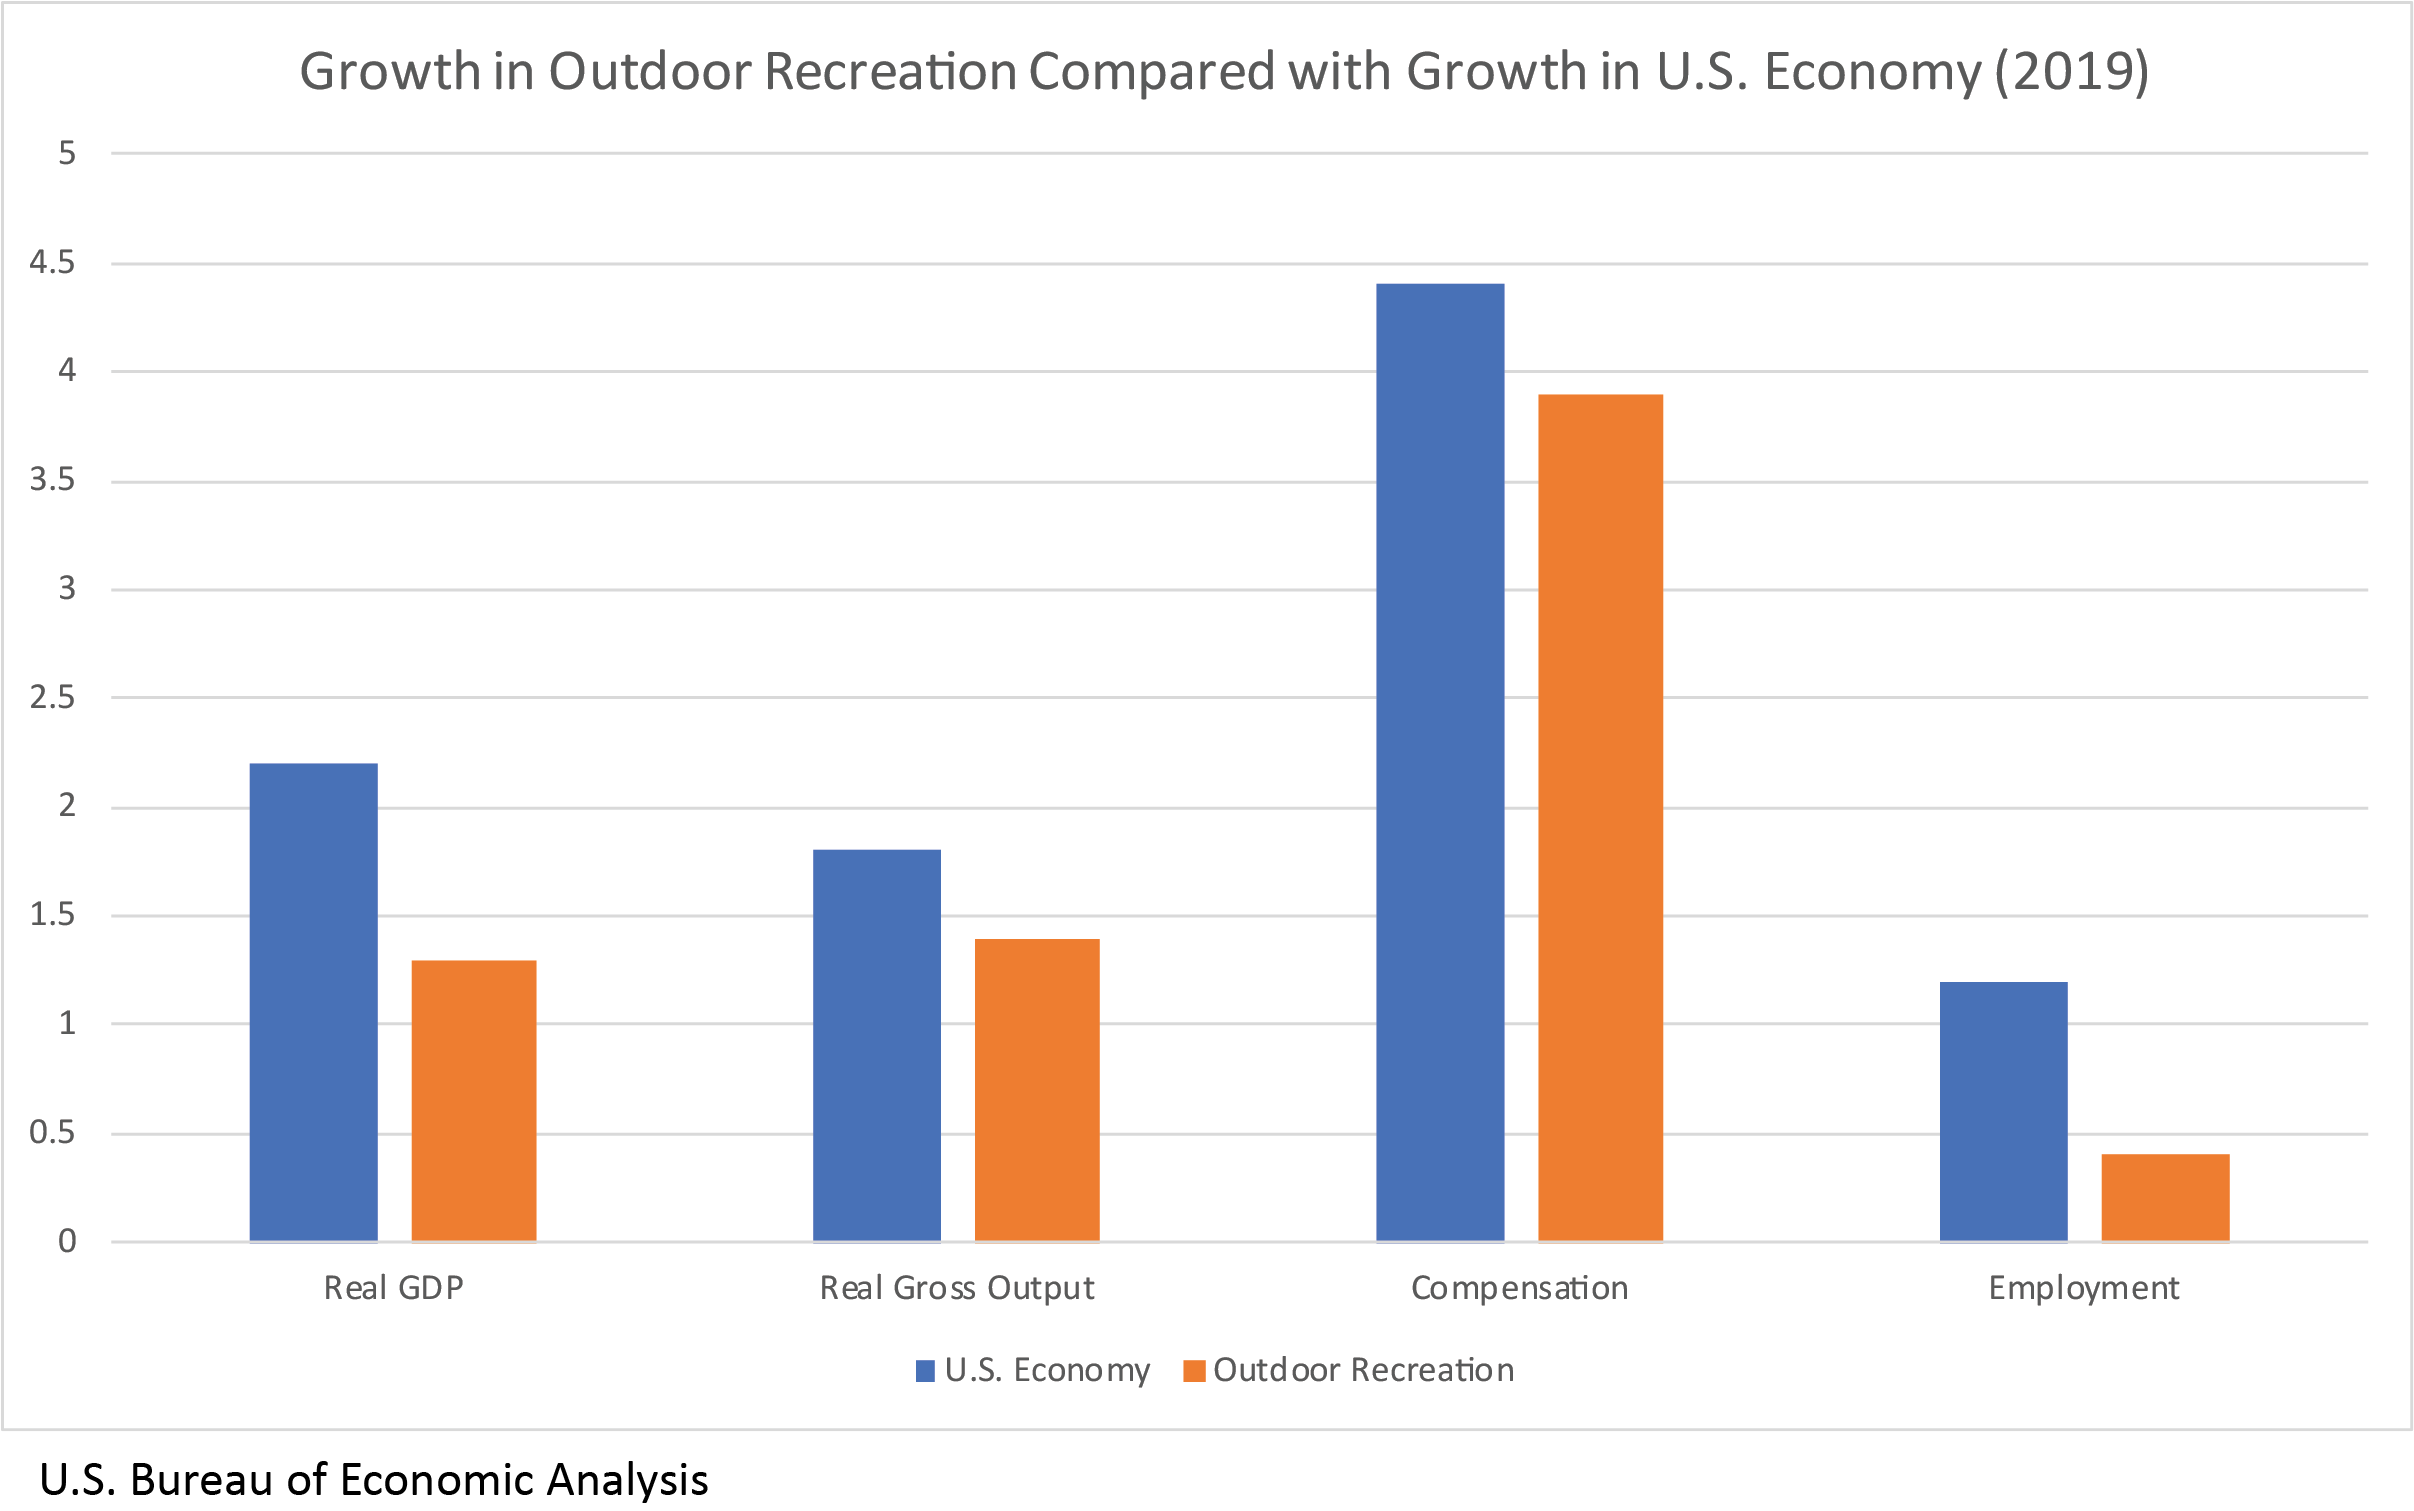 Chart: Growth in Outdoor Recreation Compared with Growth in U.S. Economy (2019)